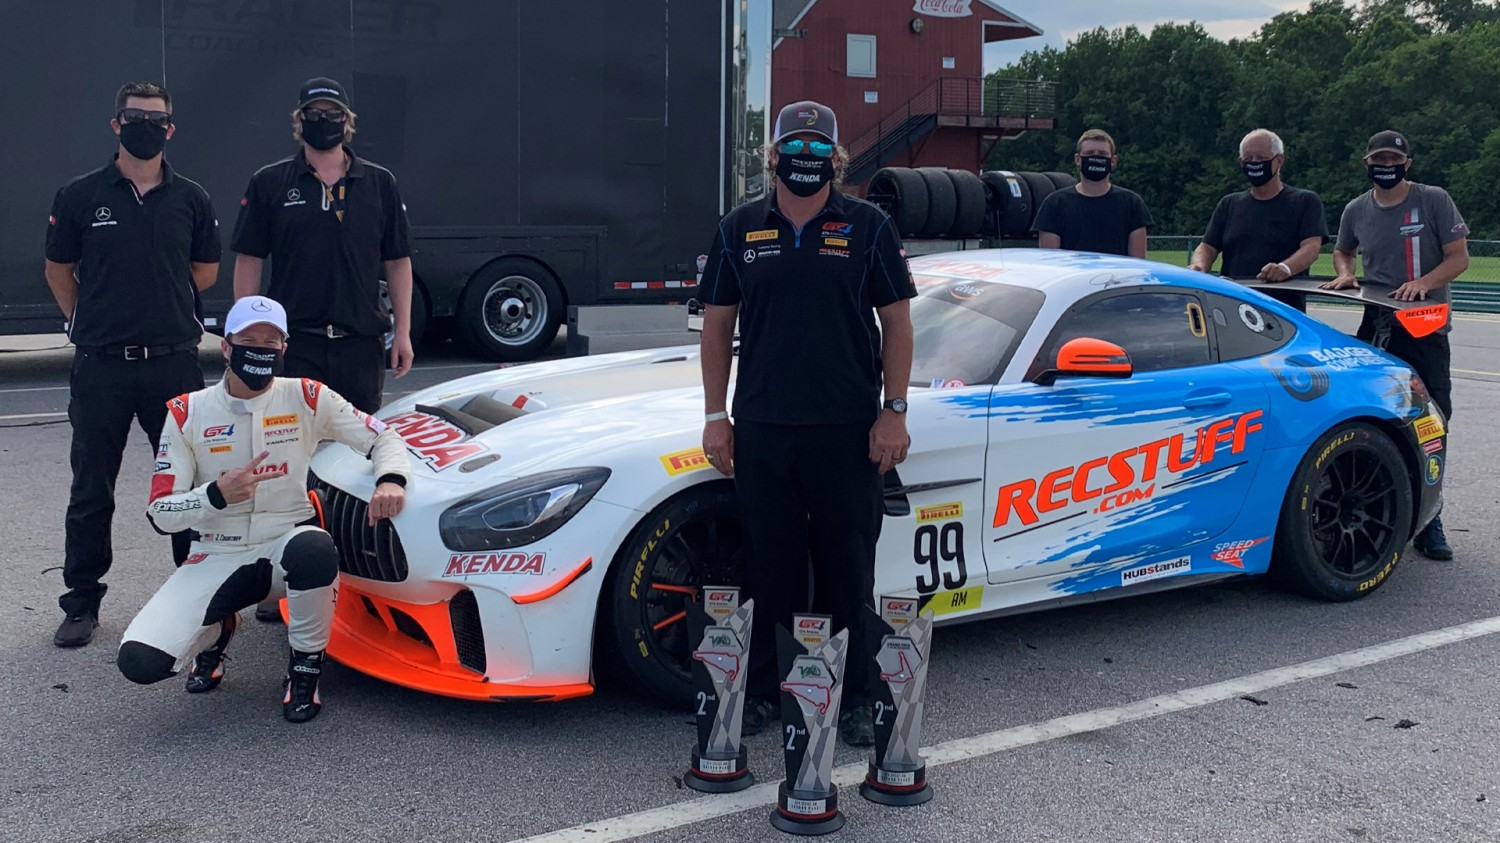 Courtney, RecStuff Racing Back in Action at VIR with Three Runner-up Finishes and Fastest Laps